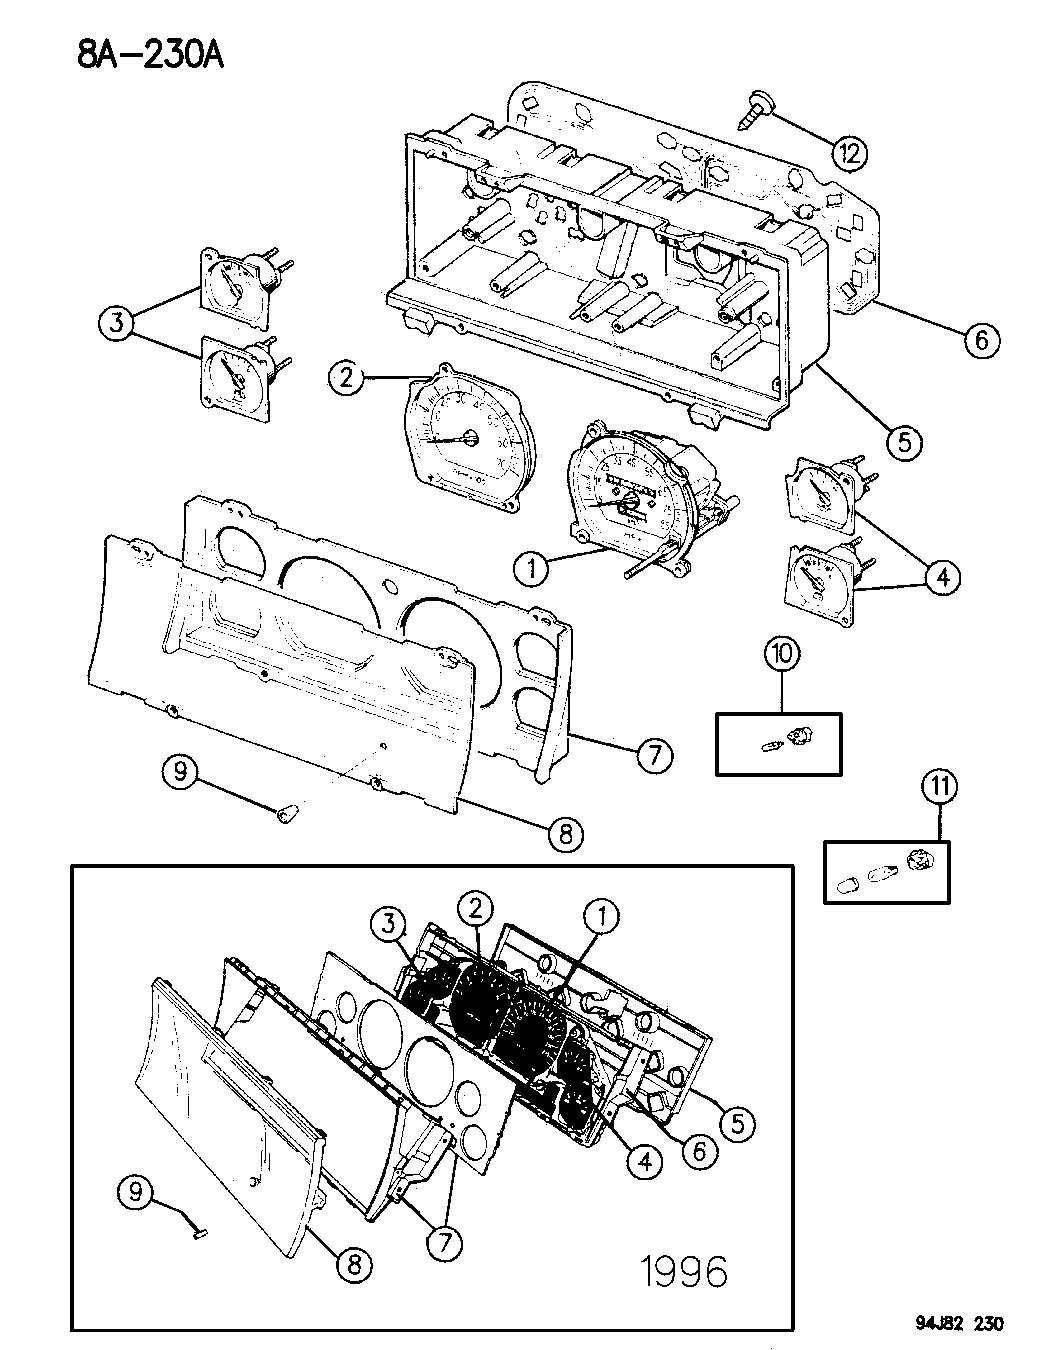 1998 Bonneville Engine Diagram Wiring Diagrams 97 Pontiac Images Gallery